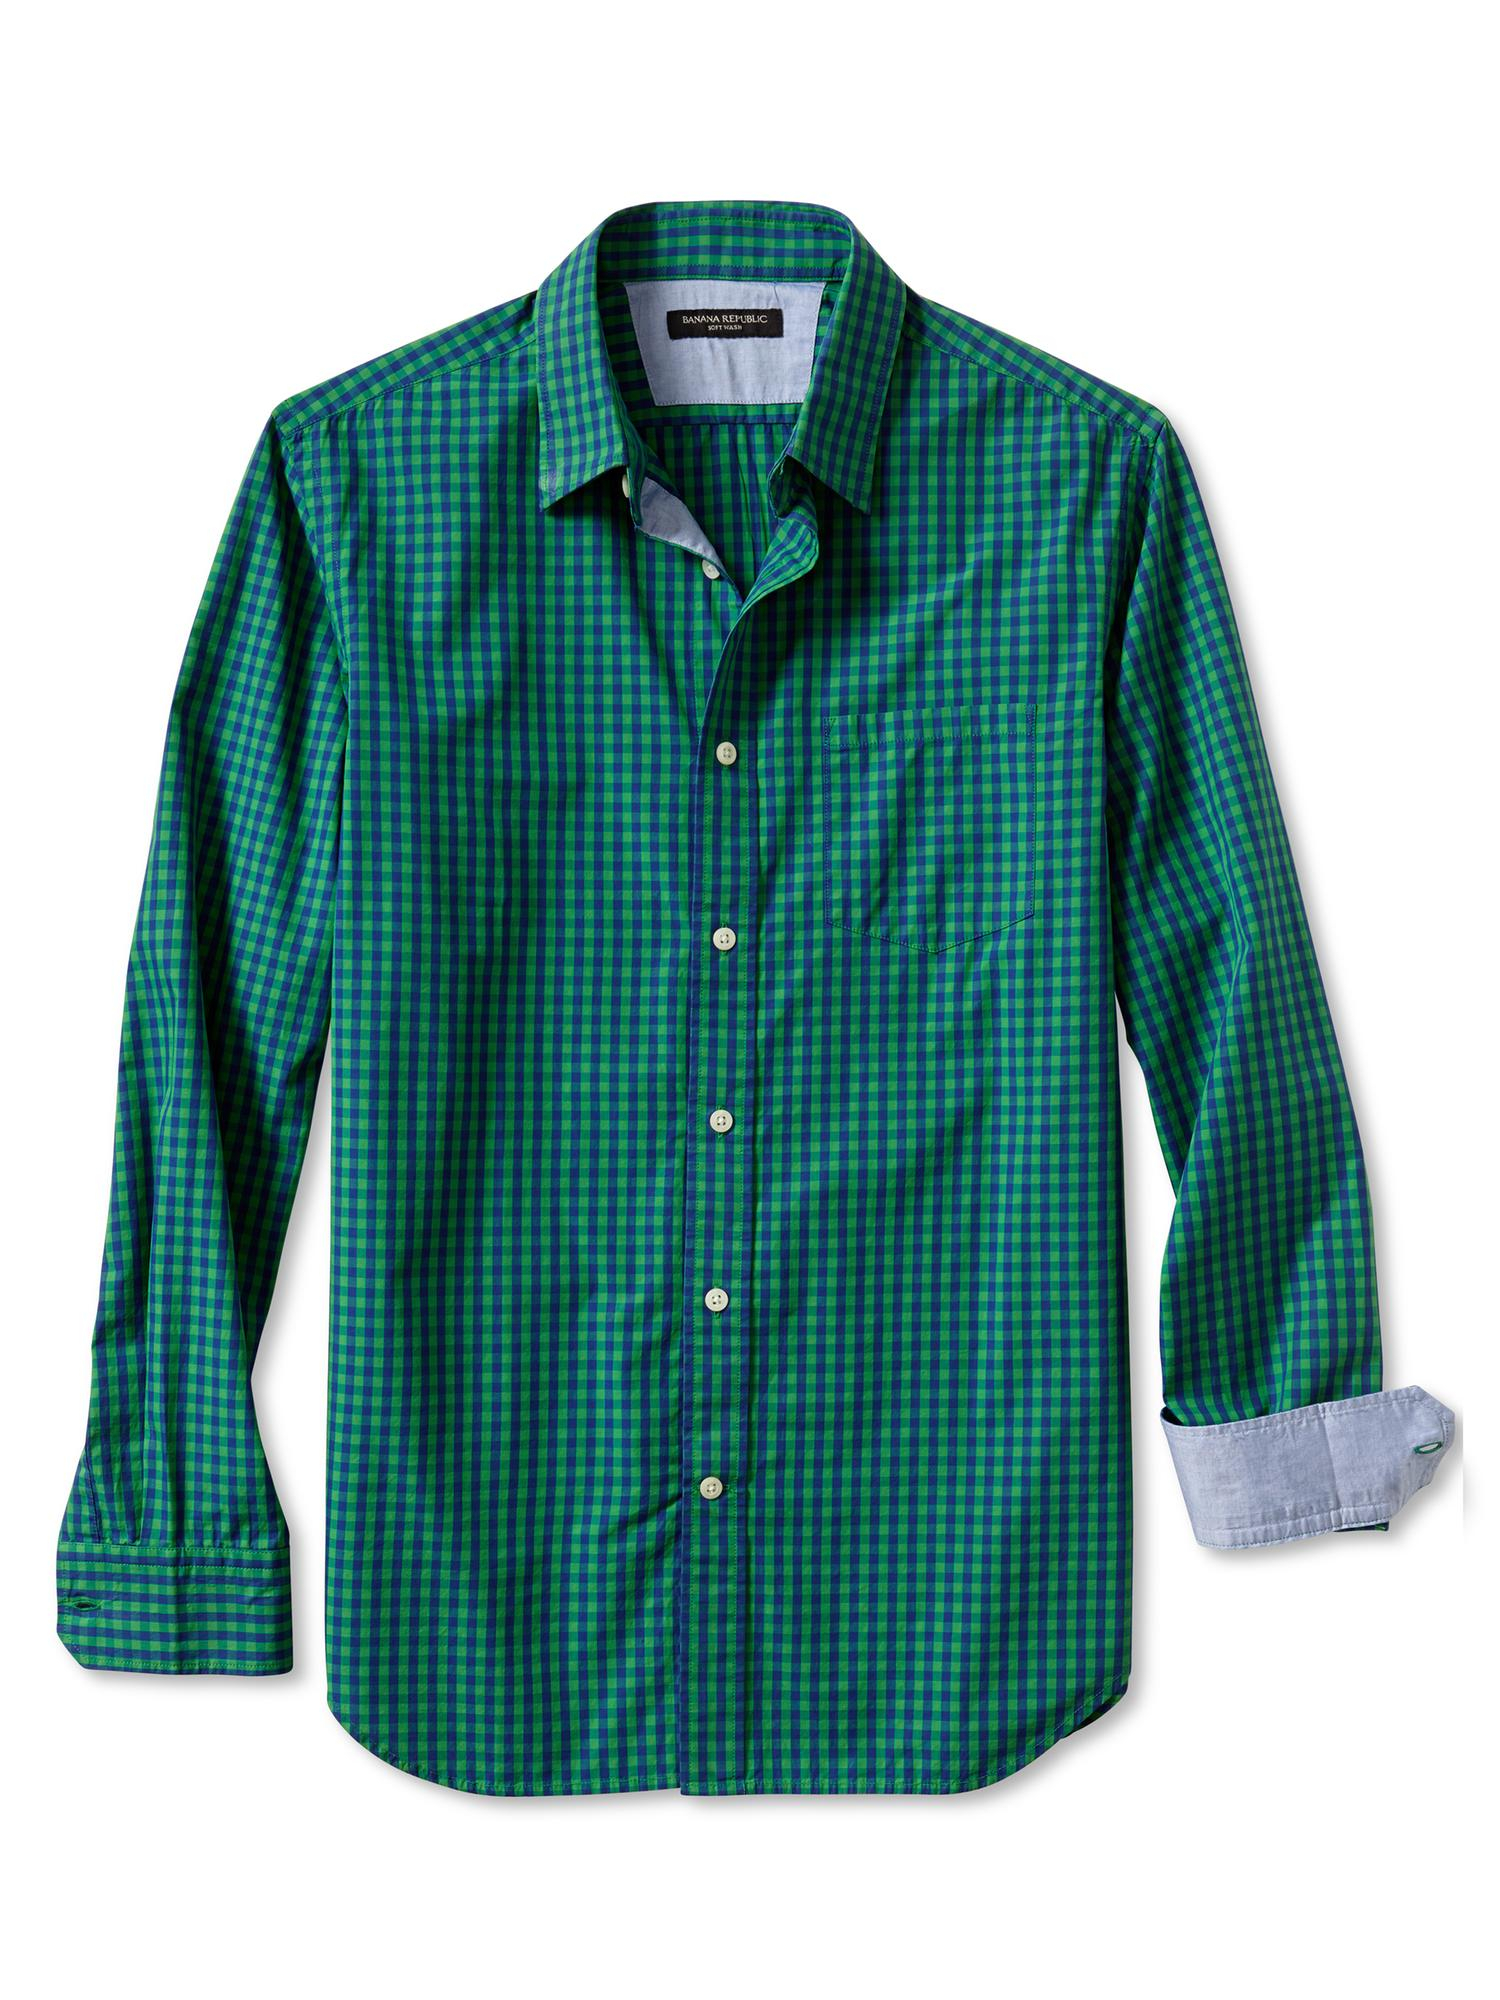 Banana republic slim fit soft wash emerald shirt emerald Emerald green mens dress shirt